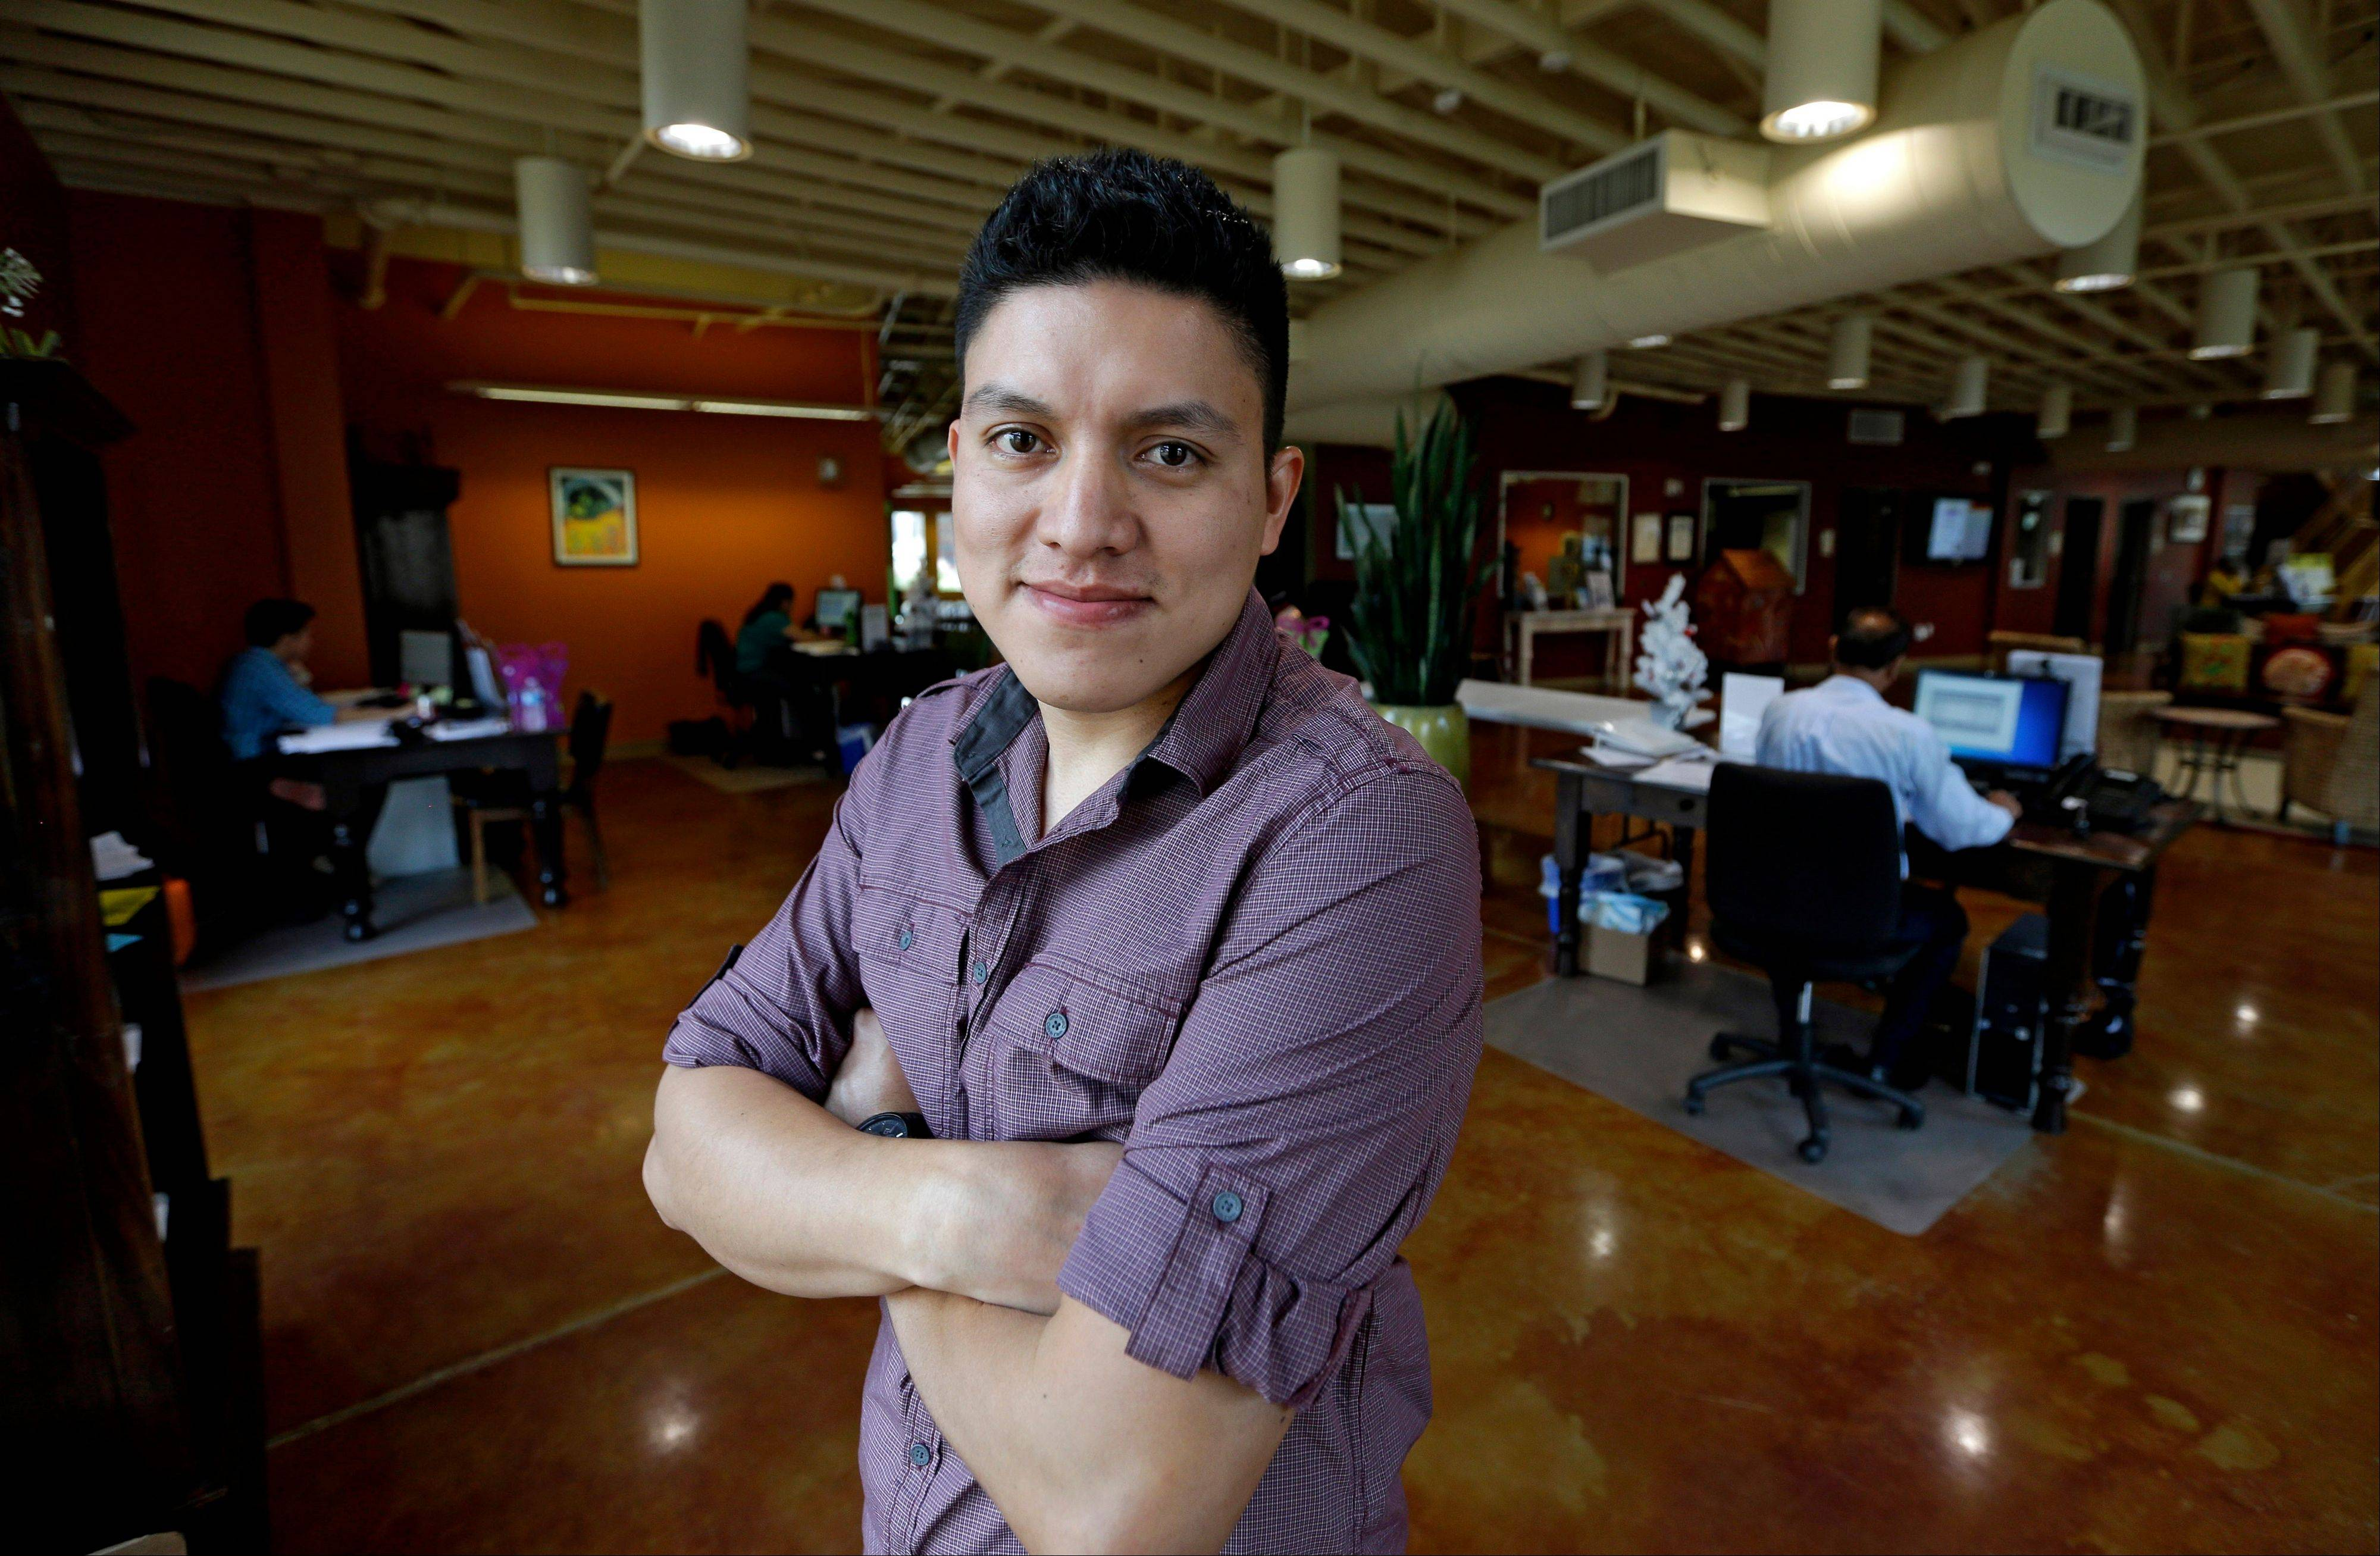 Manuel Enrique Angel, 28, of El Salvador, made learning English his first priority upon arriving in Houston from his native El Salvador two years ago. He now speaks English clearly and deliberately and plans to apply for citizenship as soon as he becomes eligible later this year. He estimates it will take him up to eight months to save the money for the citizenship application.